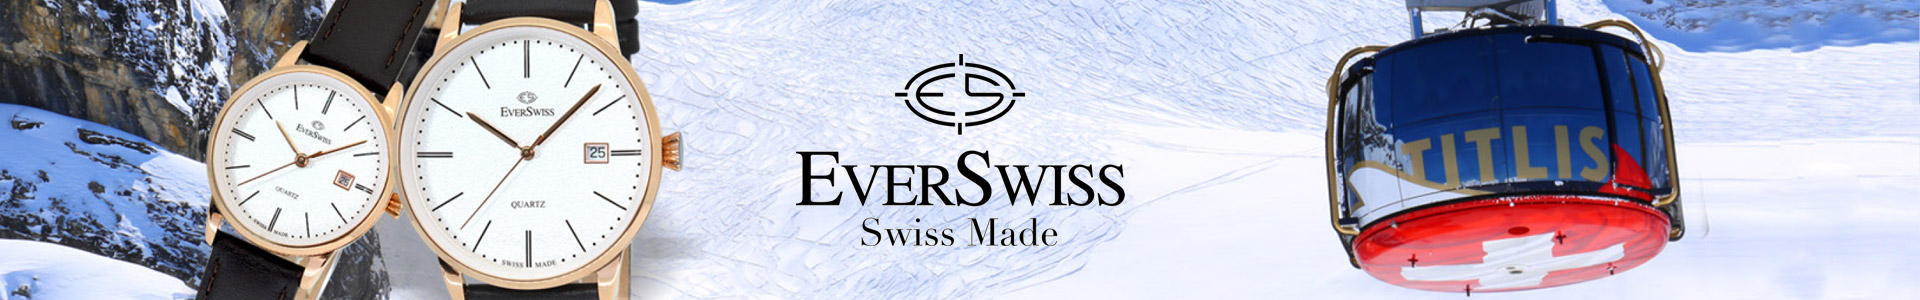 Everswiss